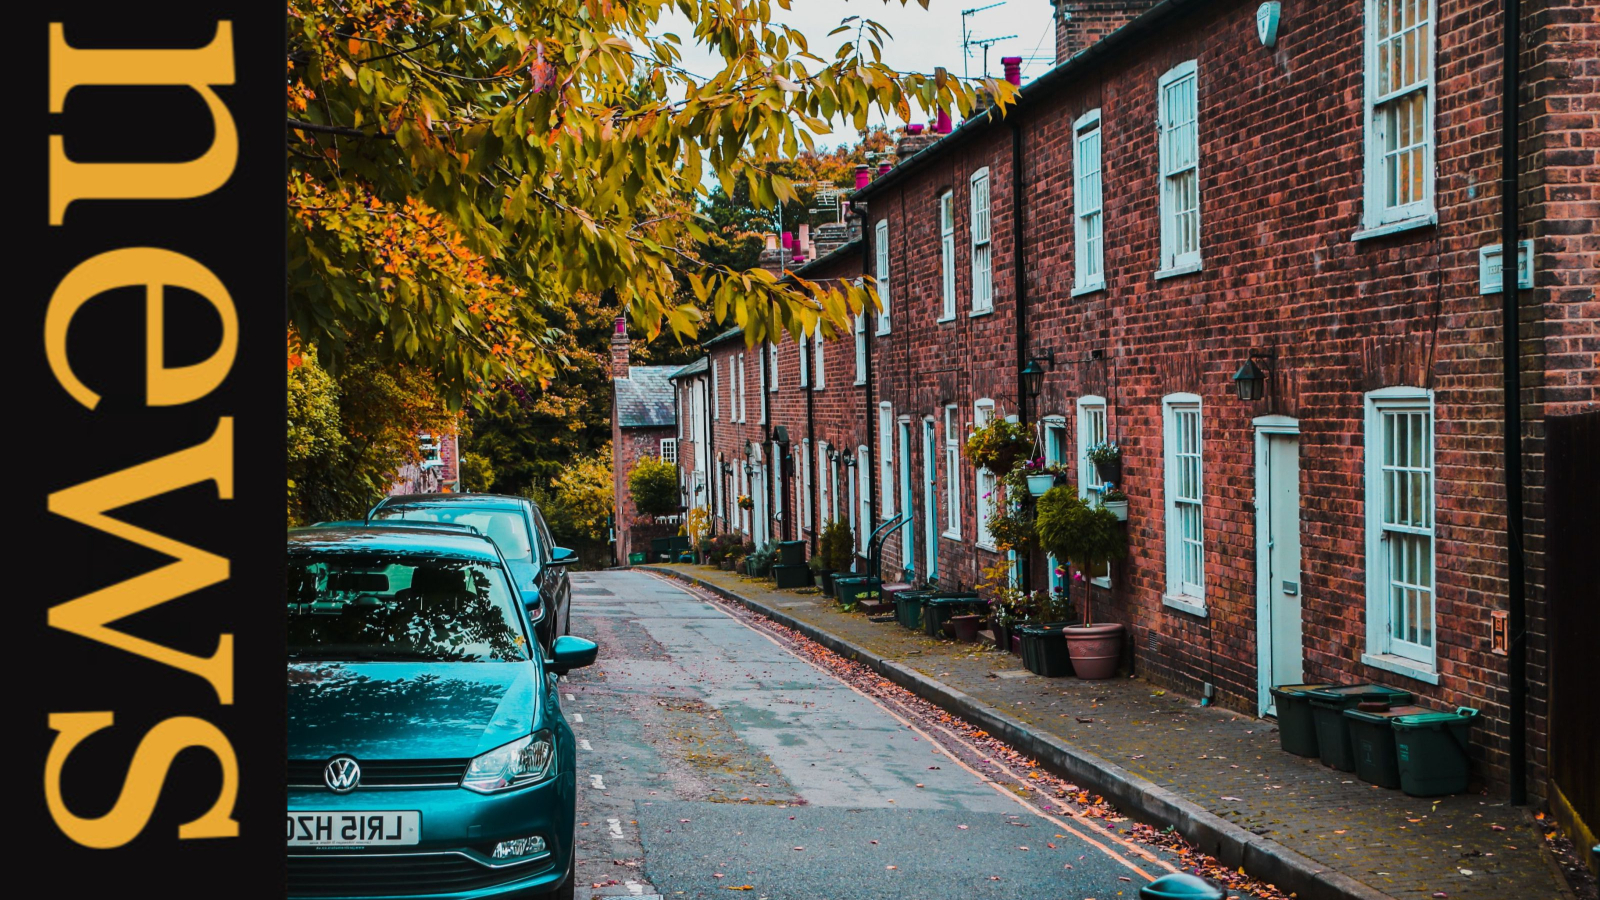 News: Housing Market Trends for Autumn 2020